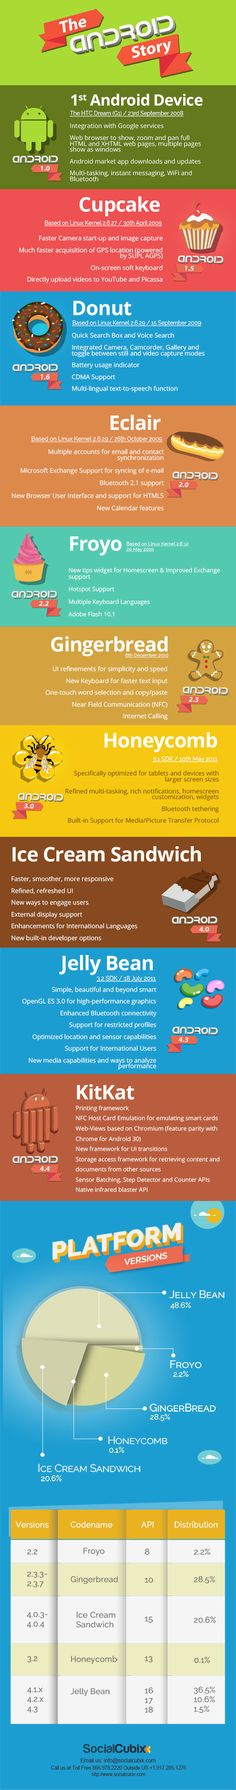 The Android Story  #Infographic #Android #Technology